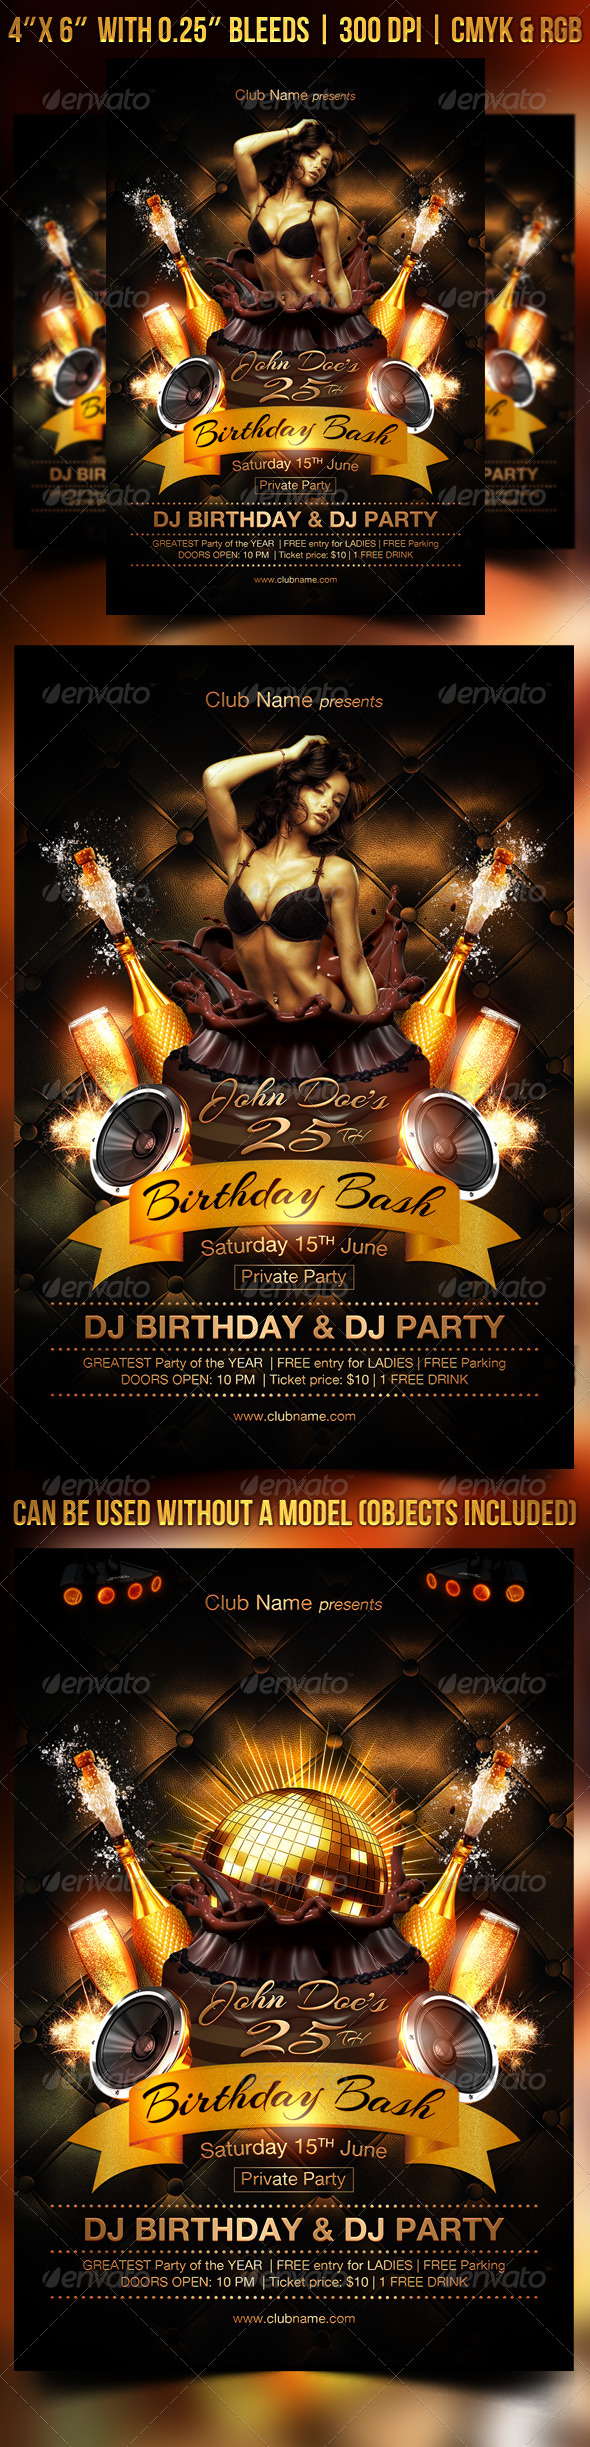 GraphicRiver Birthday Bash Flyer Template 8517069